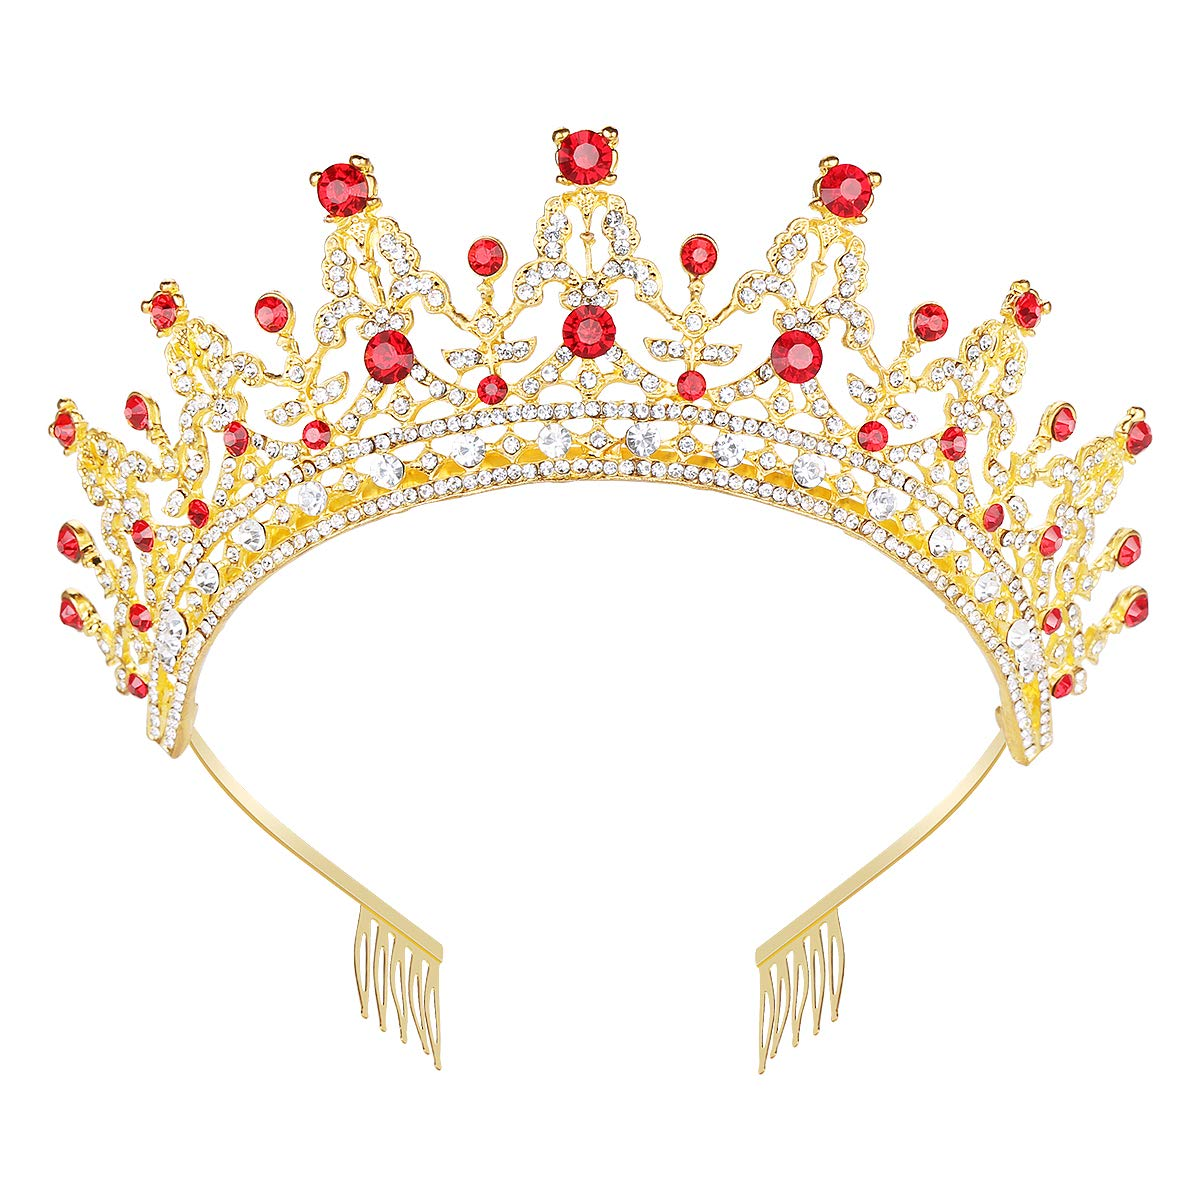 Makone Queen Crown for Womens Gold Tiara with Red Rhinestone for Halloween Birthday Girls Prom Halloween Bridal Party by Makone